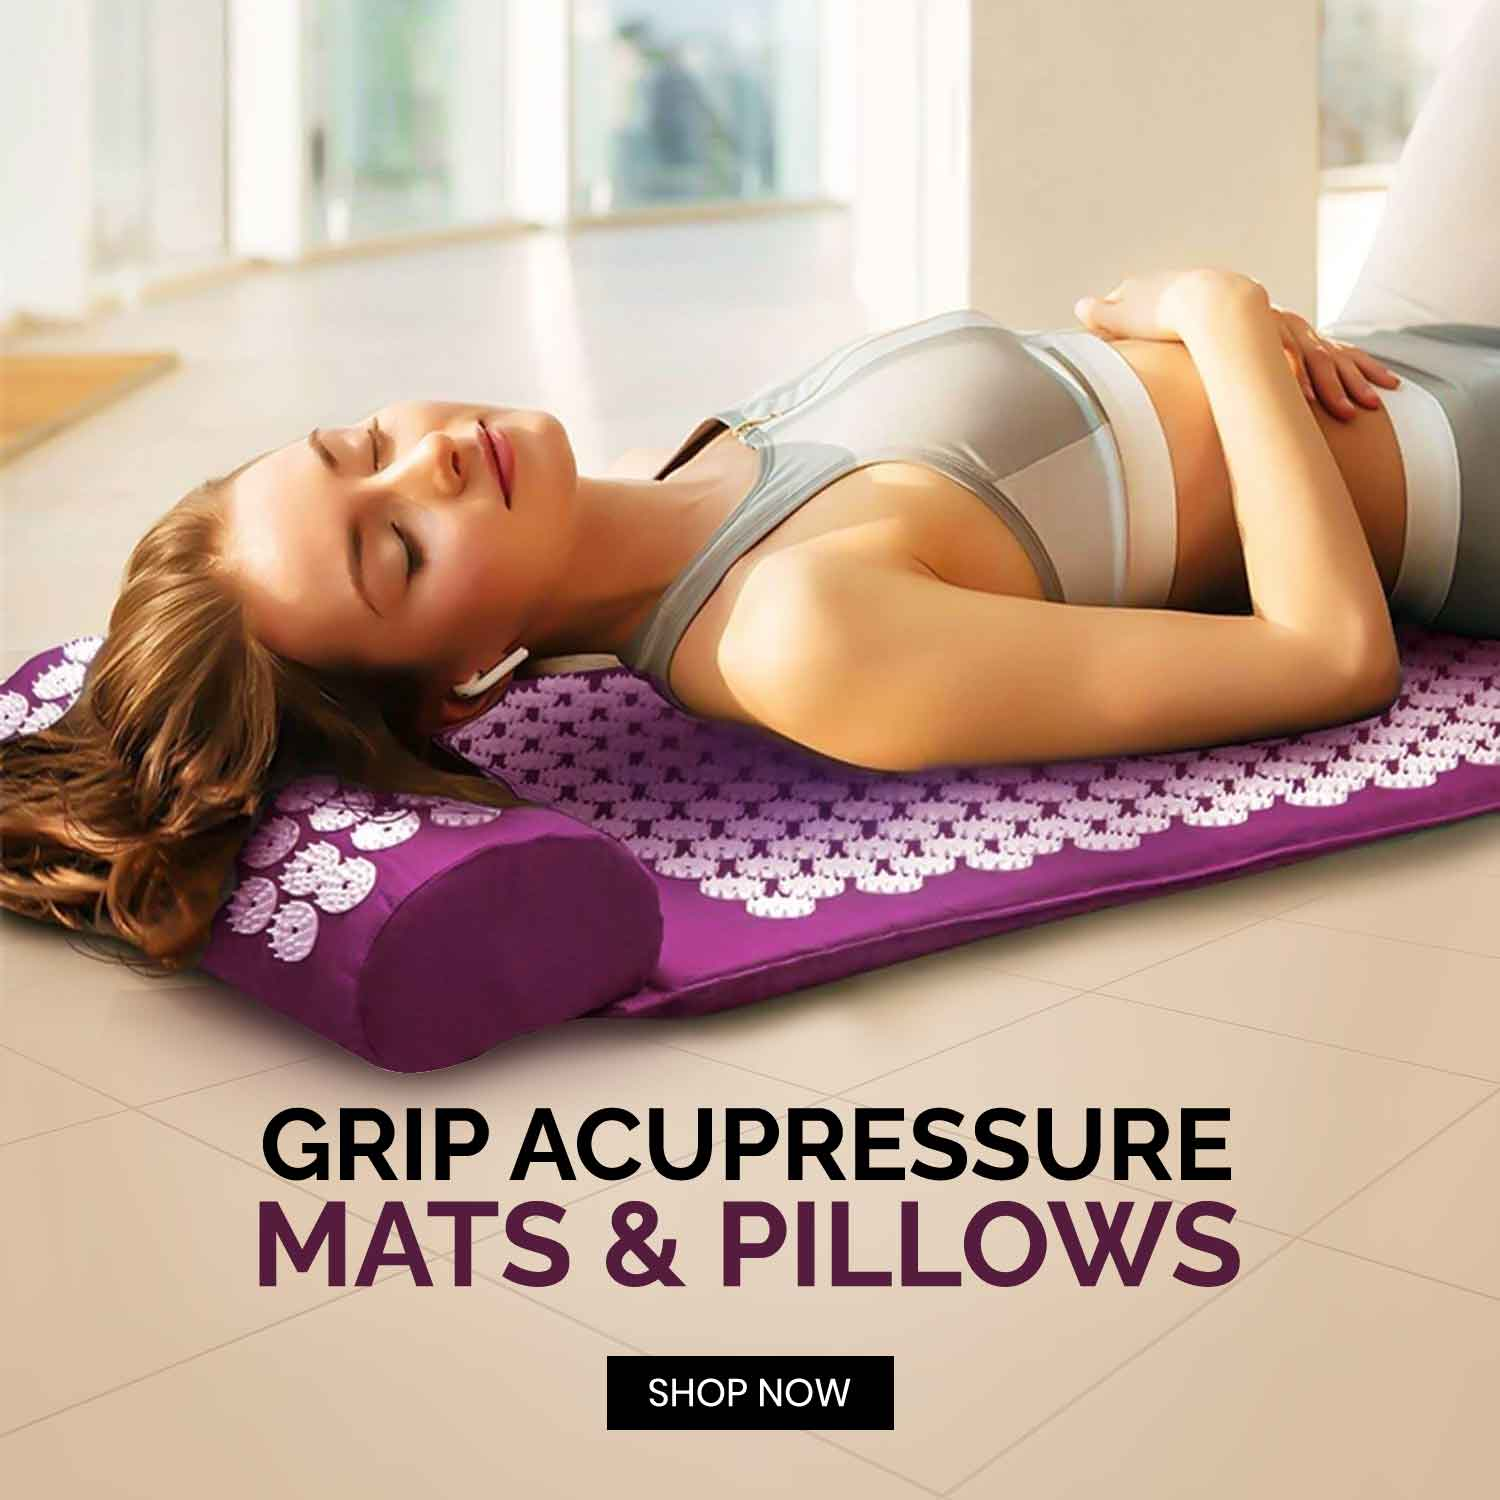 Grip Accupressure Mat Pillows